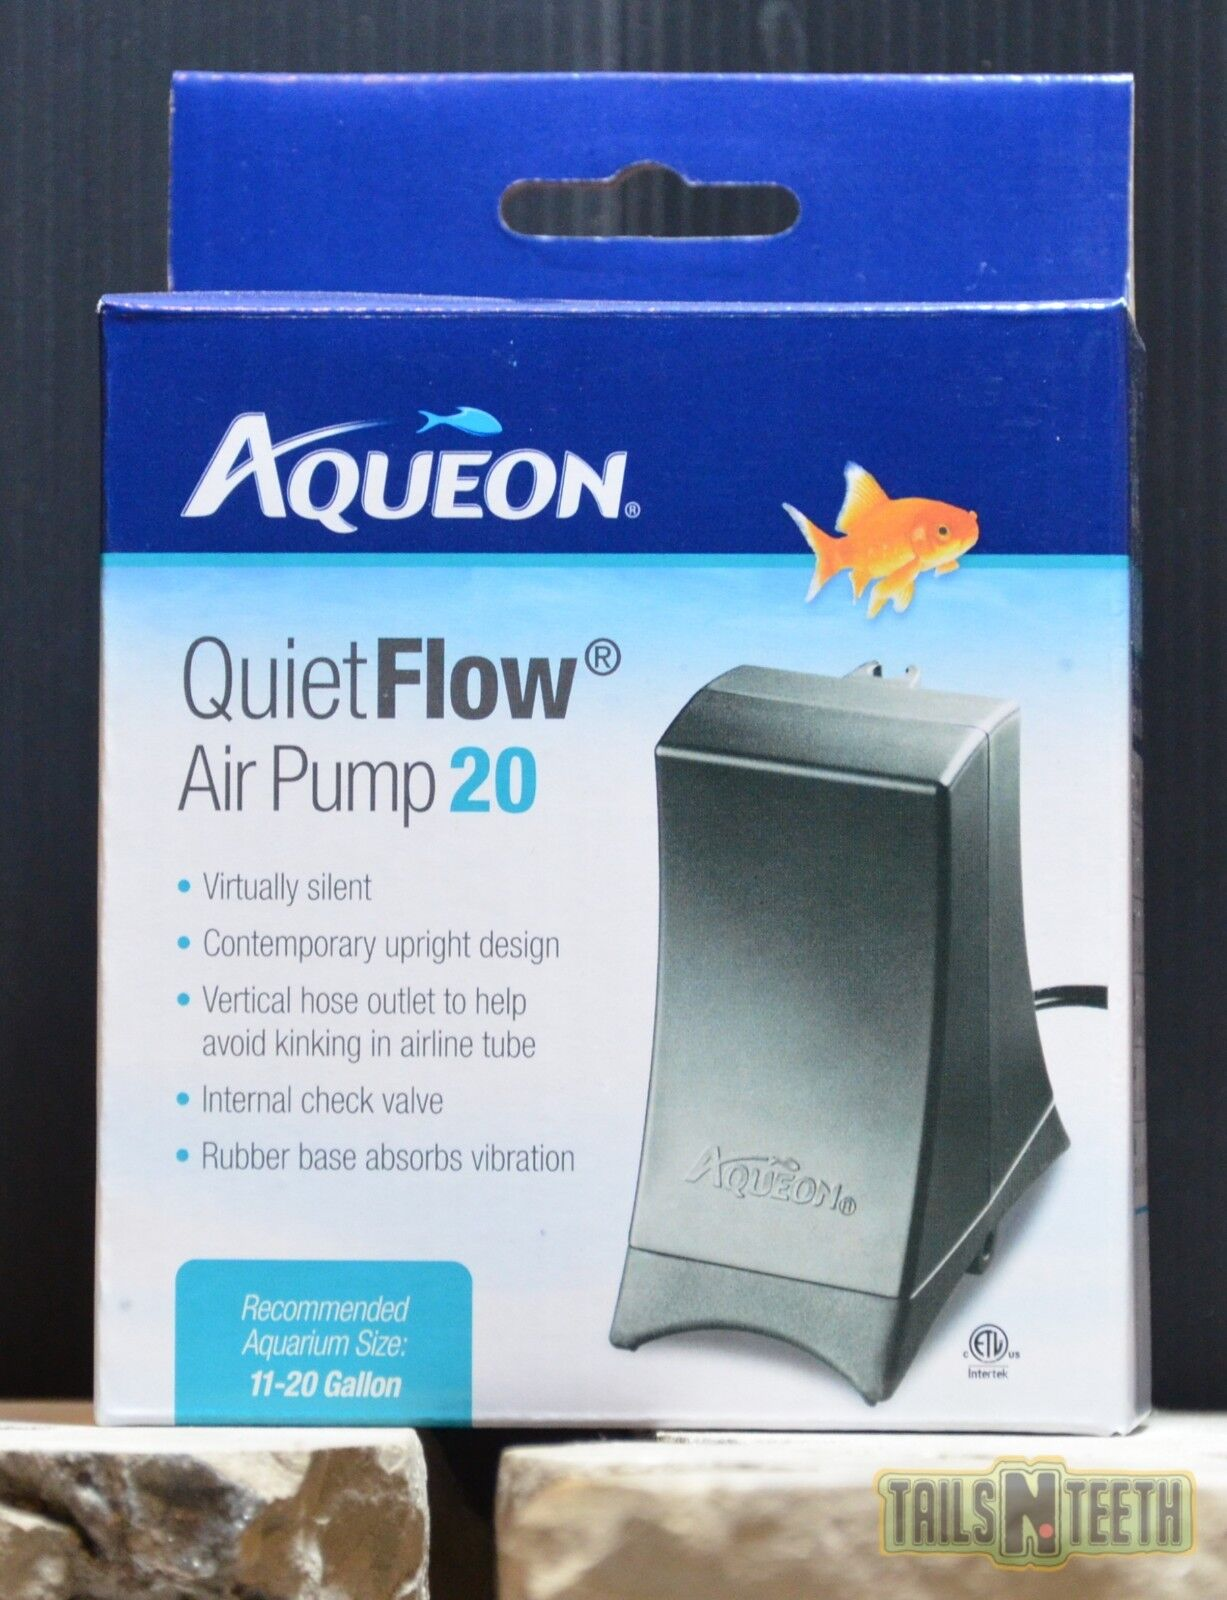 Aqueon Quiet Flow 20 Aquarium Air Pump, 11-20 Gallons